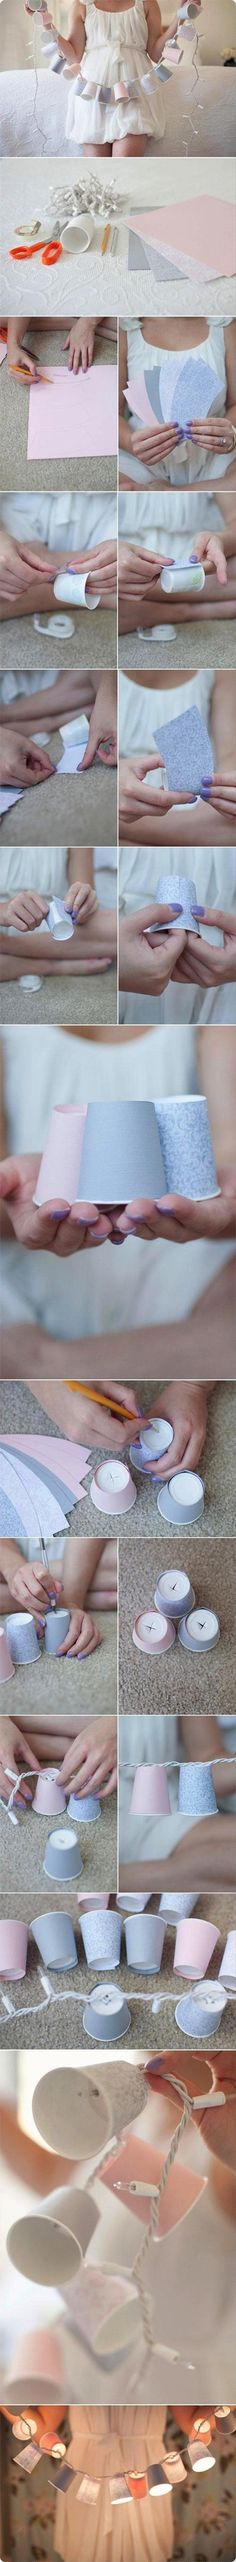 Fun Do It Yourself Craft Ideas - 32 Pics